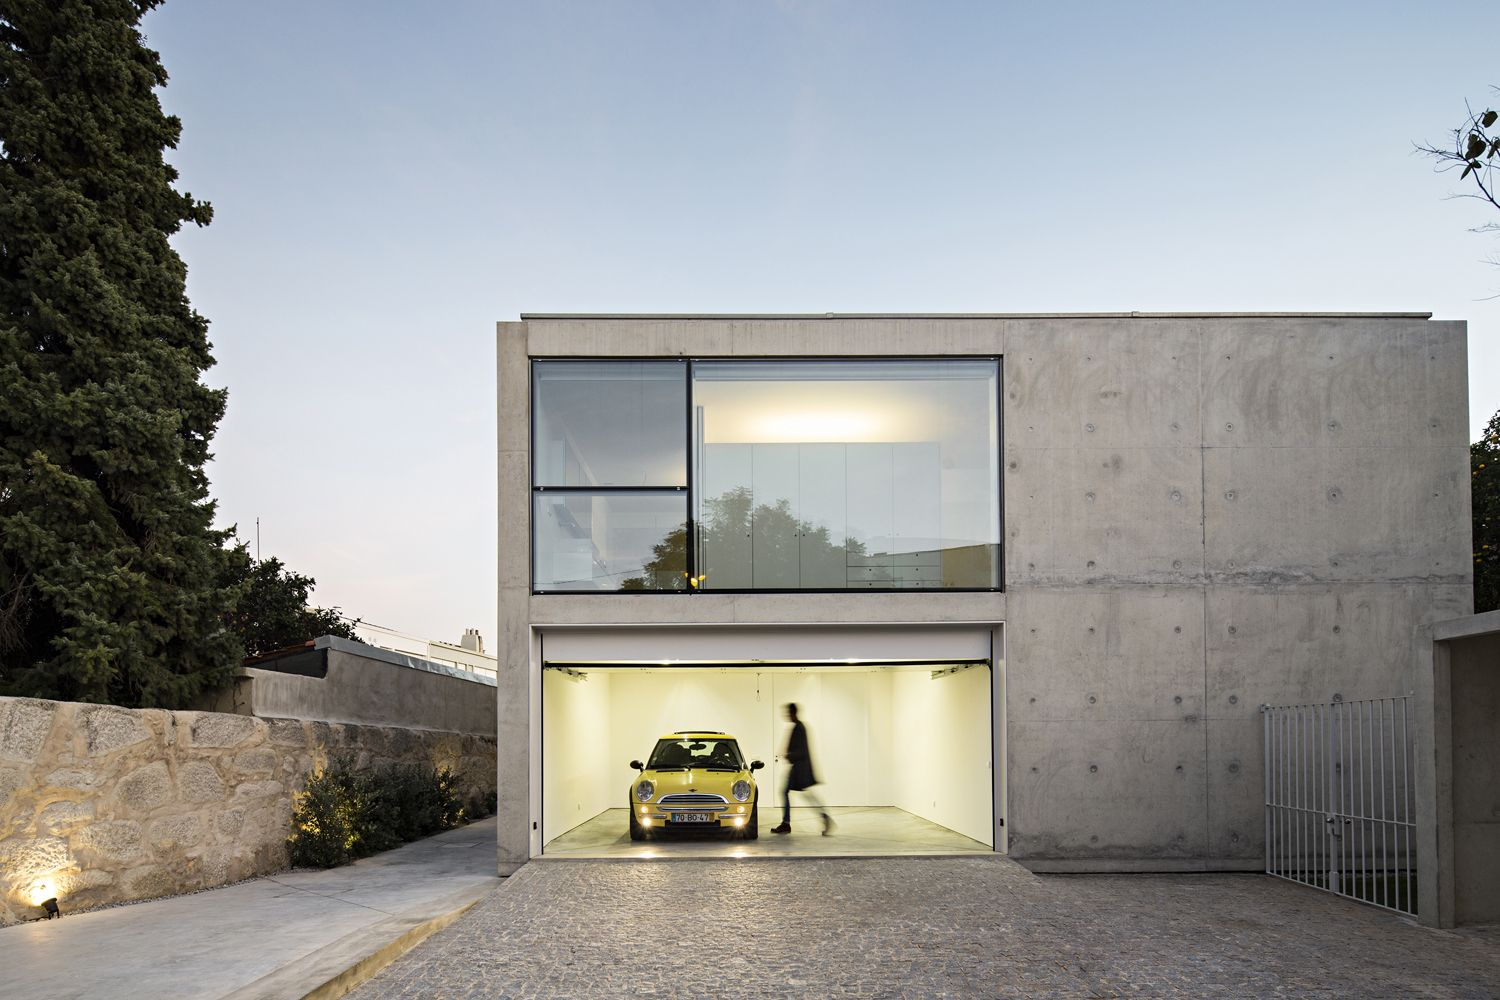 Image 1 Of 32 From Gallery Of House In Oporto Serralves Joao Vieira De Campos Photograph By Concrete House Minimalist Architecture Minimalist House Design